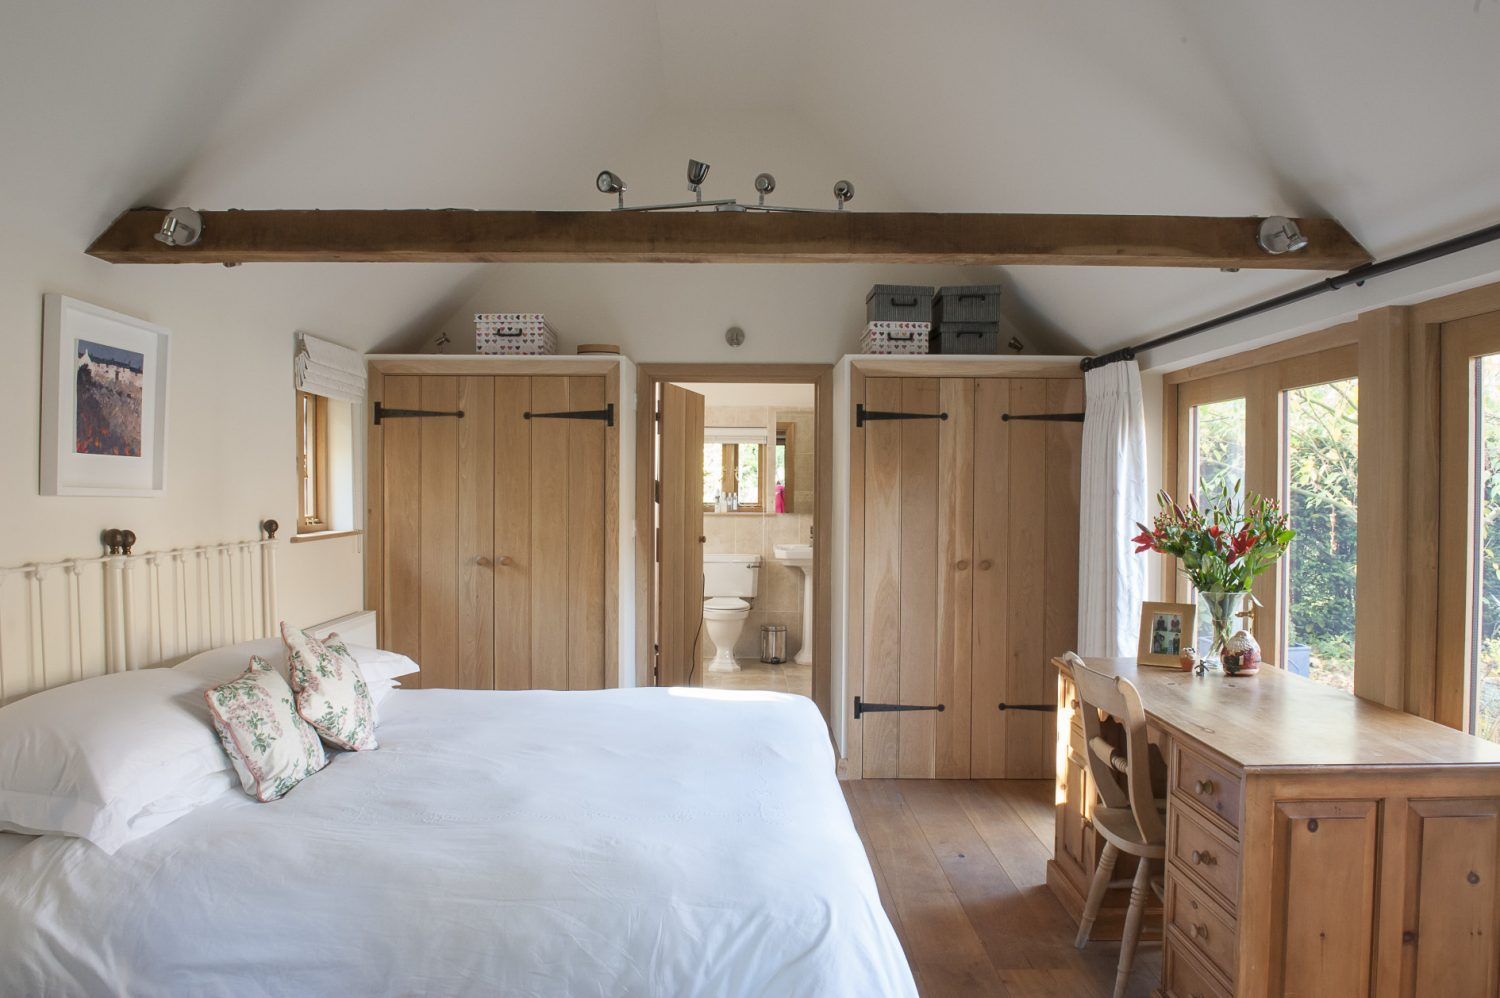 Paul and Jane converted one of the property's barns into an annexe consisting of a bedroom and en suite bathroom. Filled with the most beautiful natural light and overlooking a delightful courtyard garden, this room radiates tranquillity